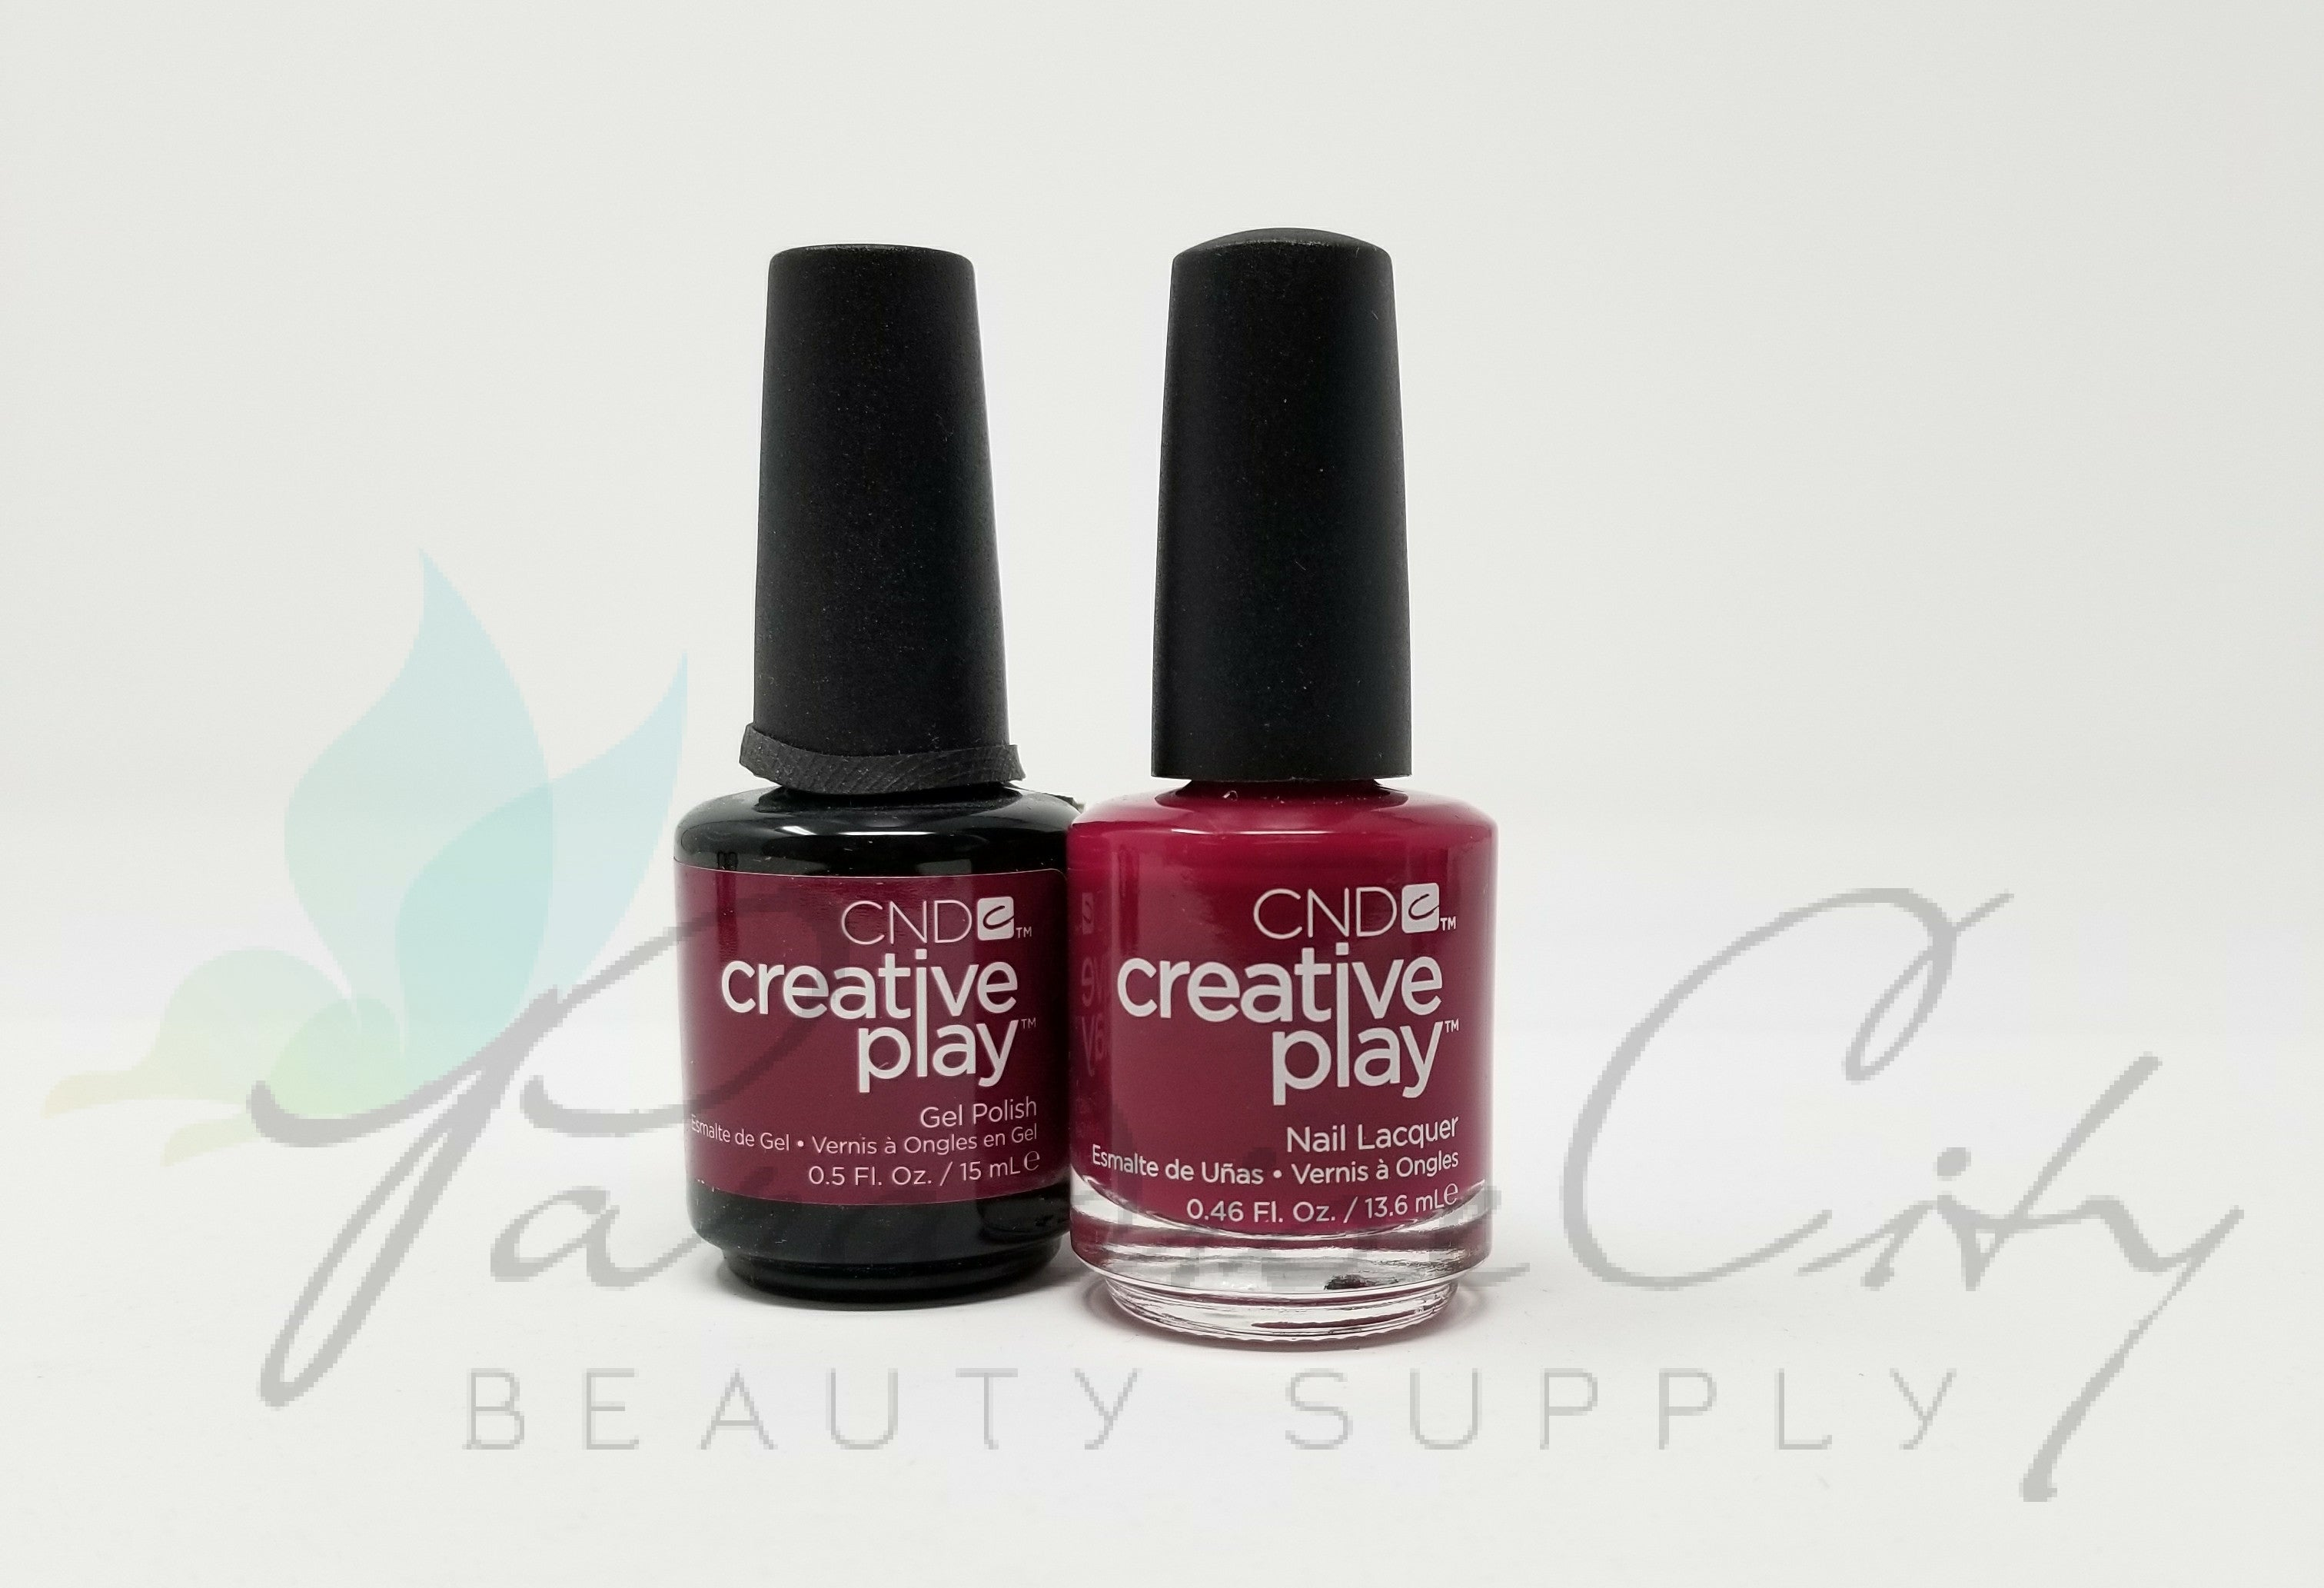 CND Creative Play Matching Gel Polish & Nail Lacquer - #460 Berry ...